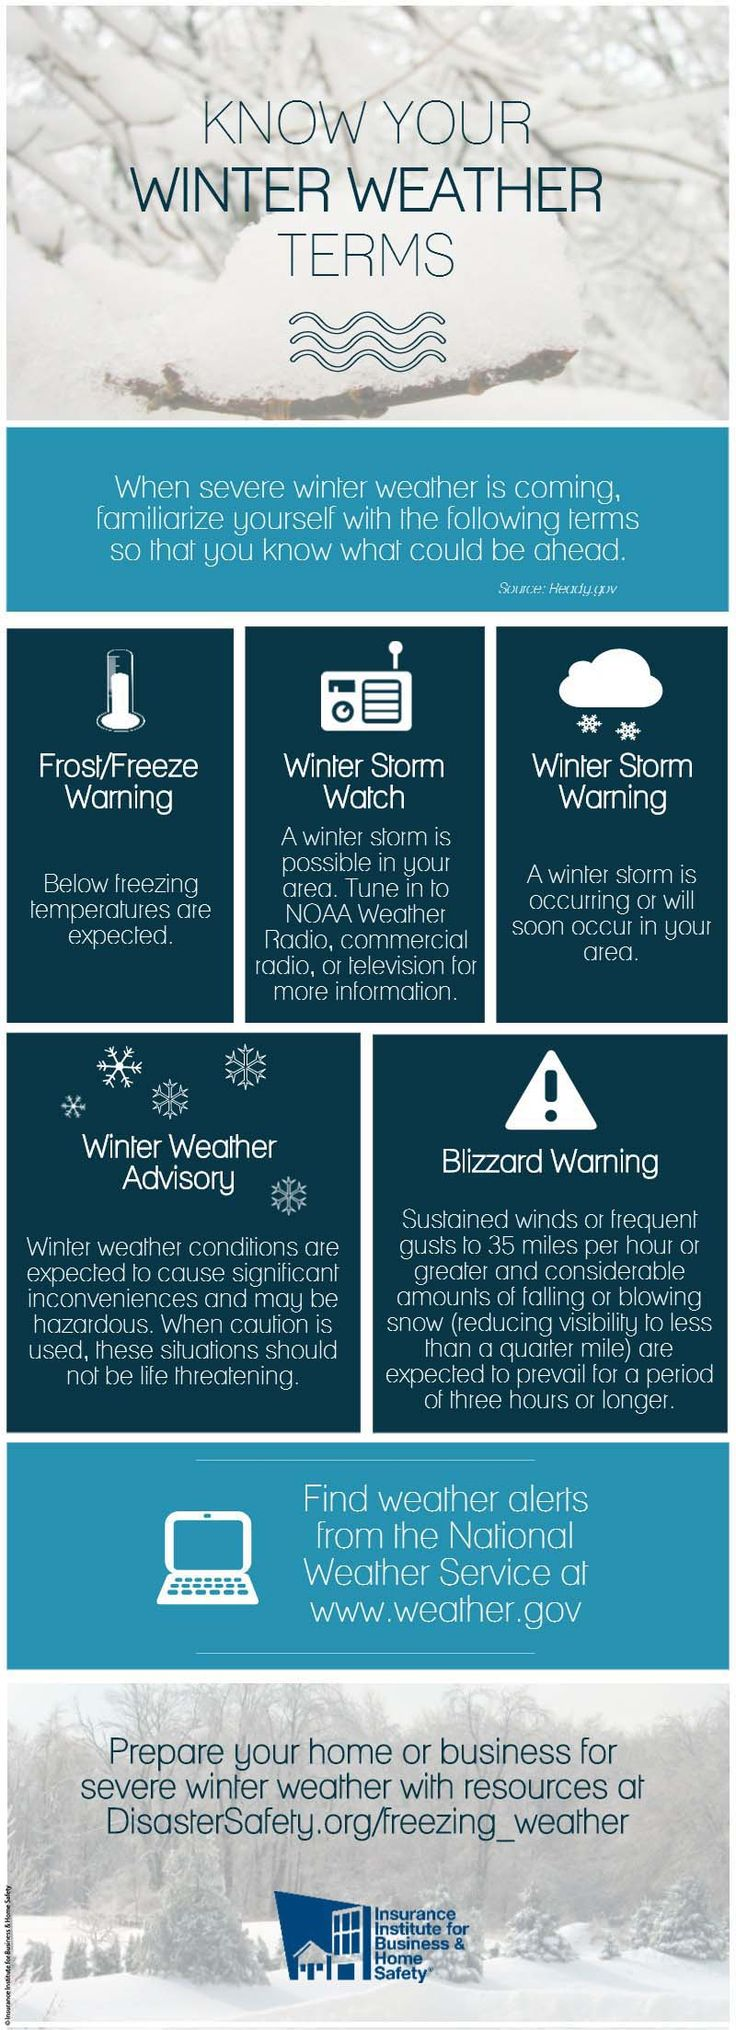 109 best Wintertime Tips images on Pinterest | Ice dams, Infographic ...